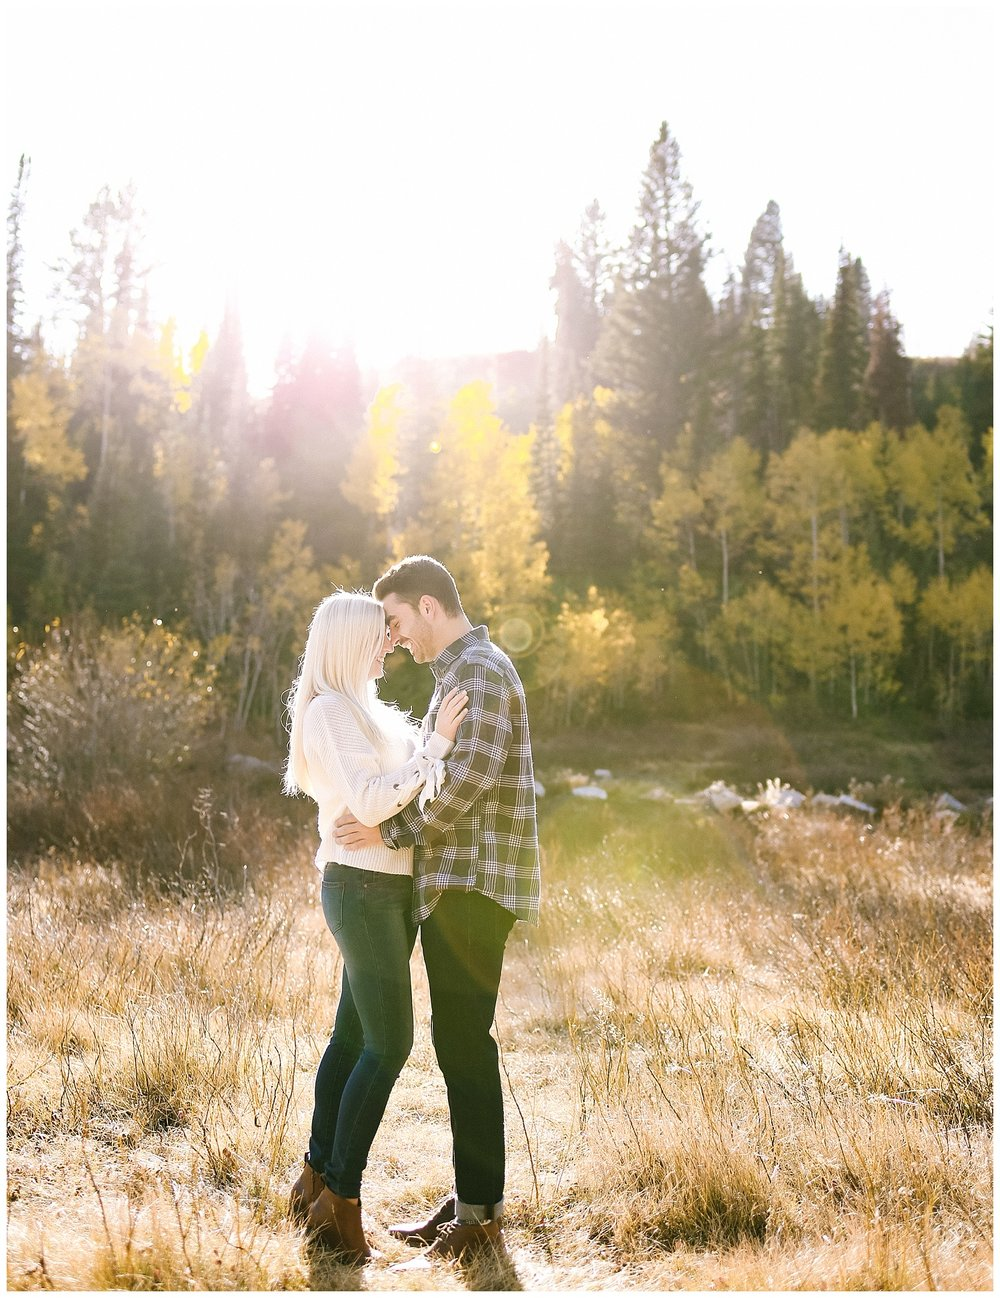 utah+colorado+montana+oregon+washington+photographer+rocky+mountain+rockies+engagement+session+lifestyle_0228.jpg